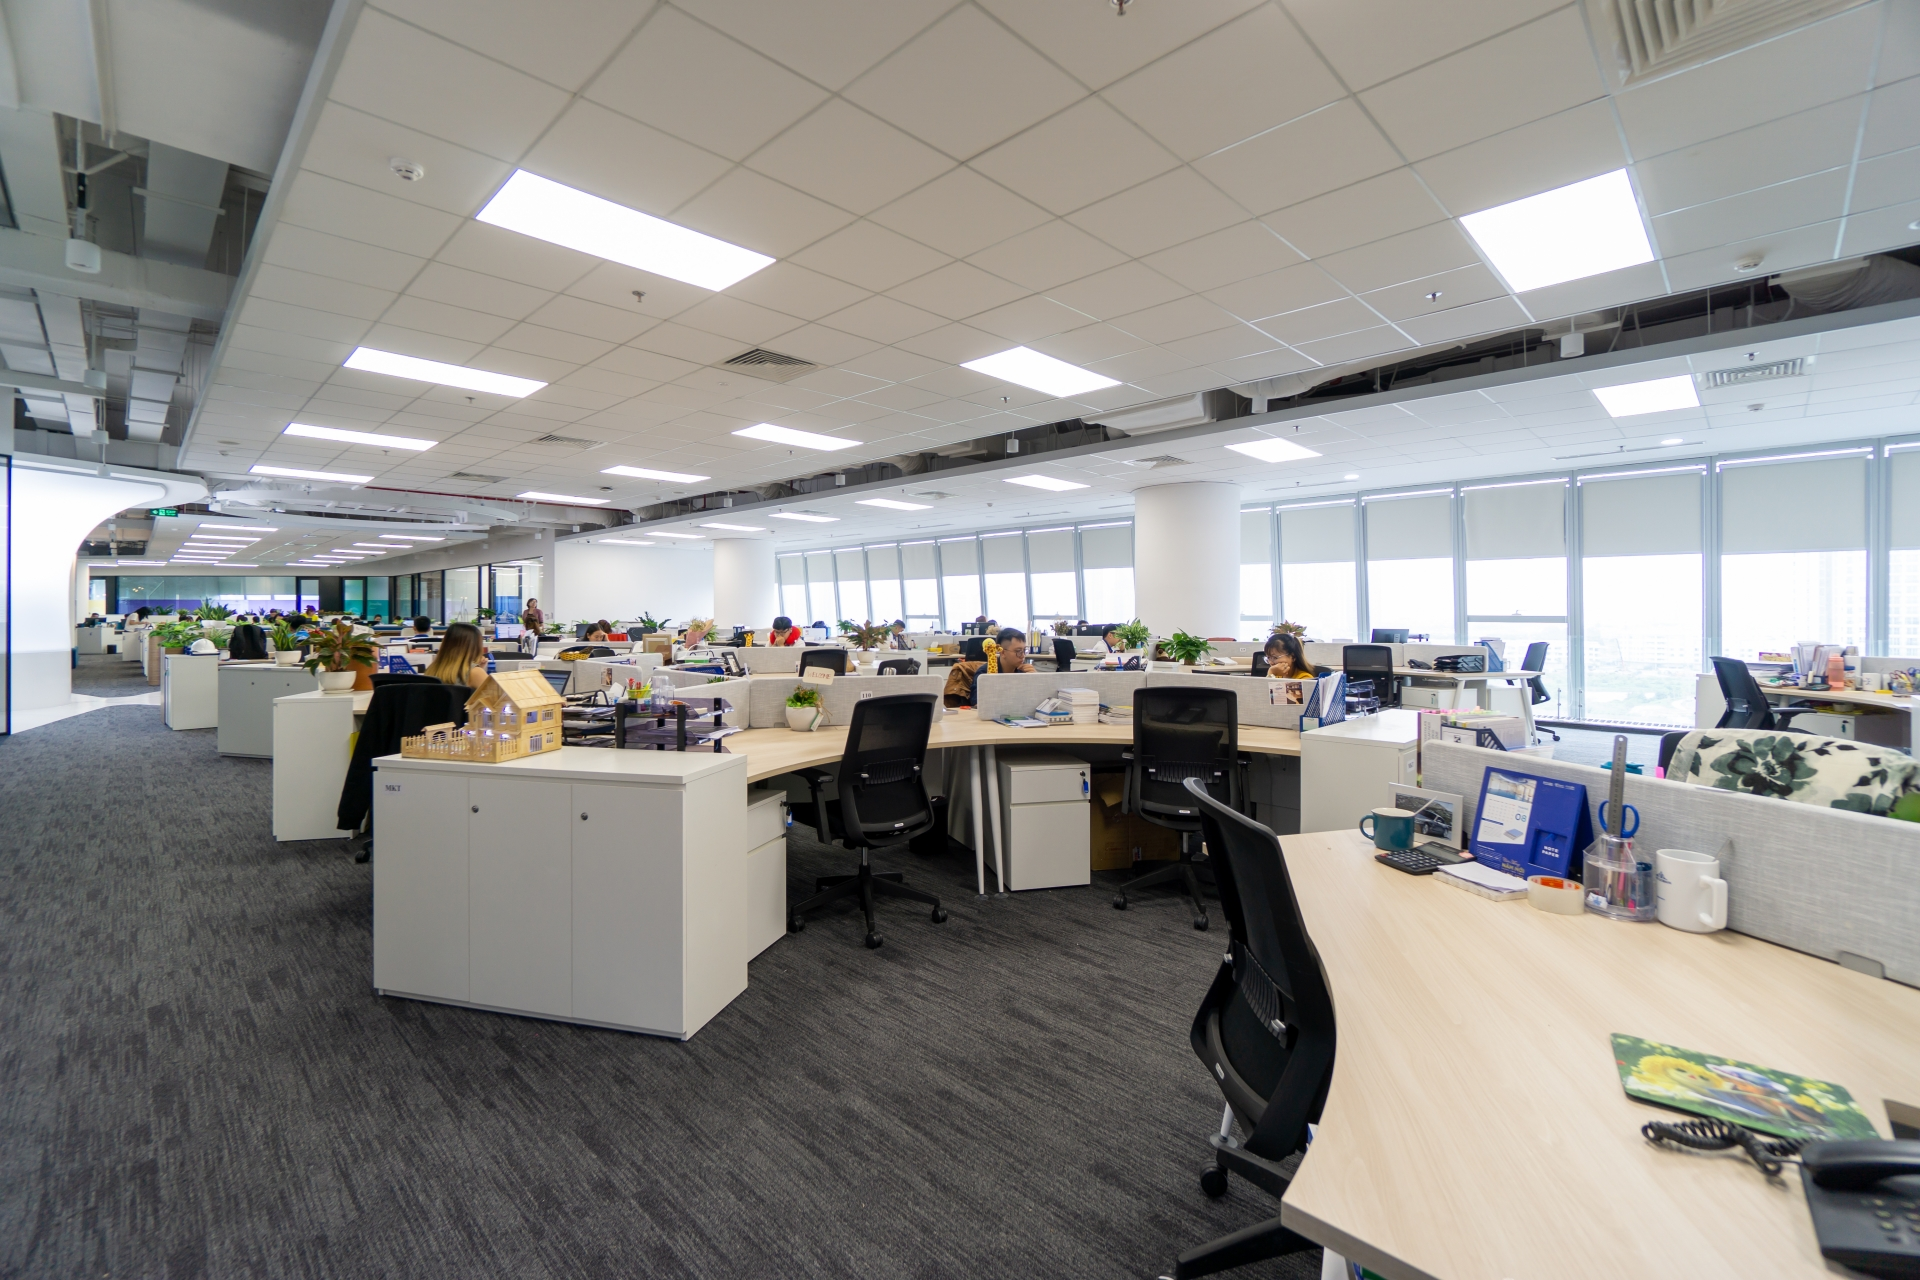 saint gobain designs offices to improve productivity by 20 per cent